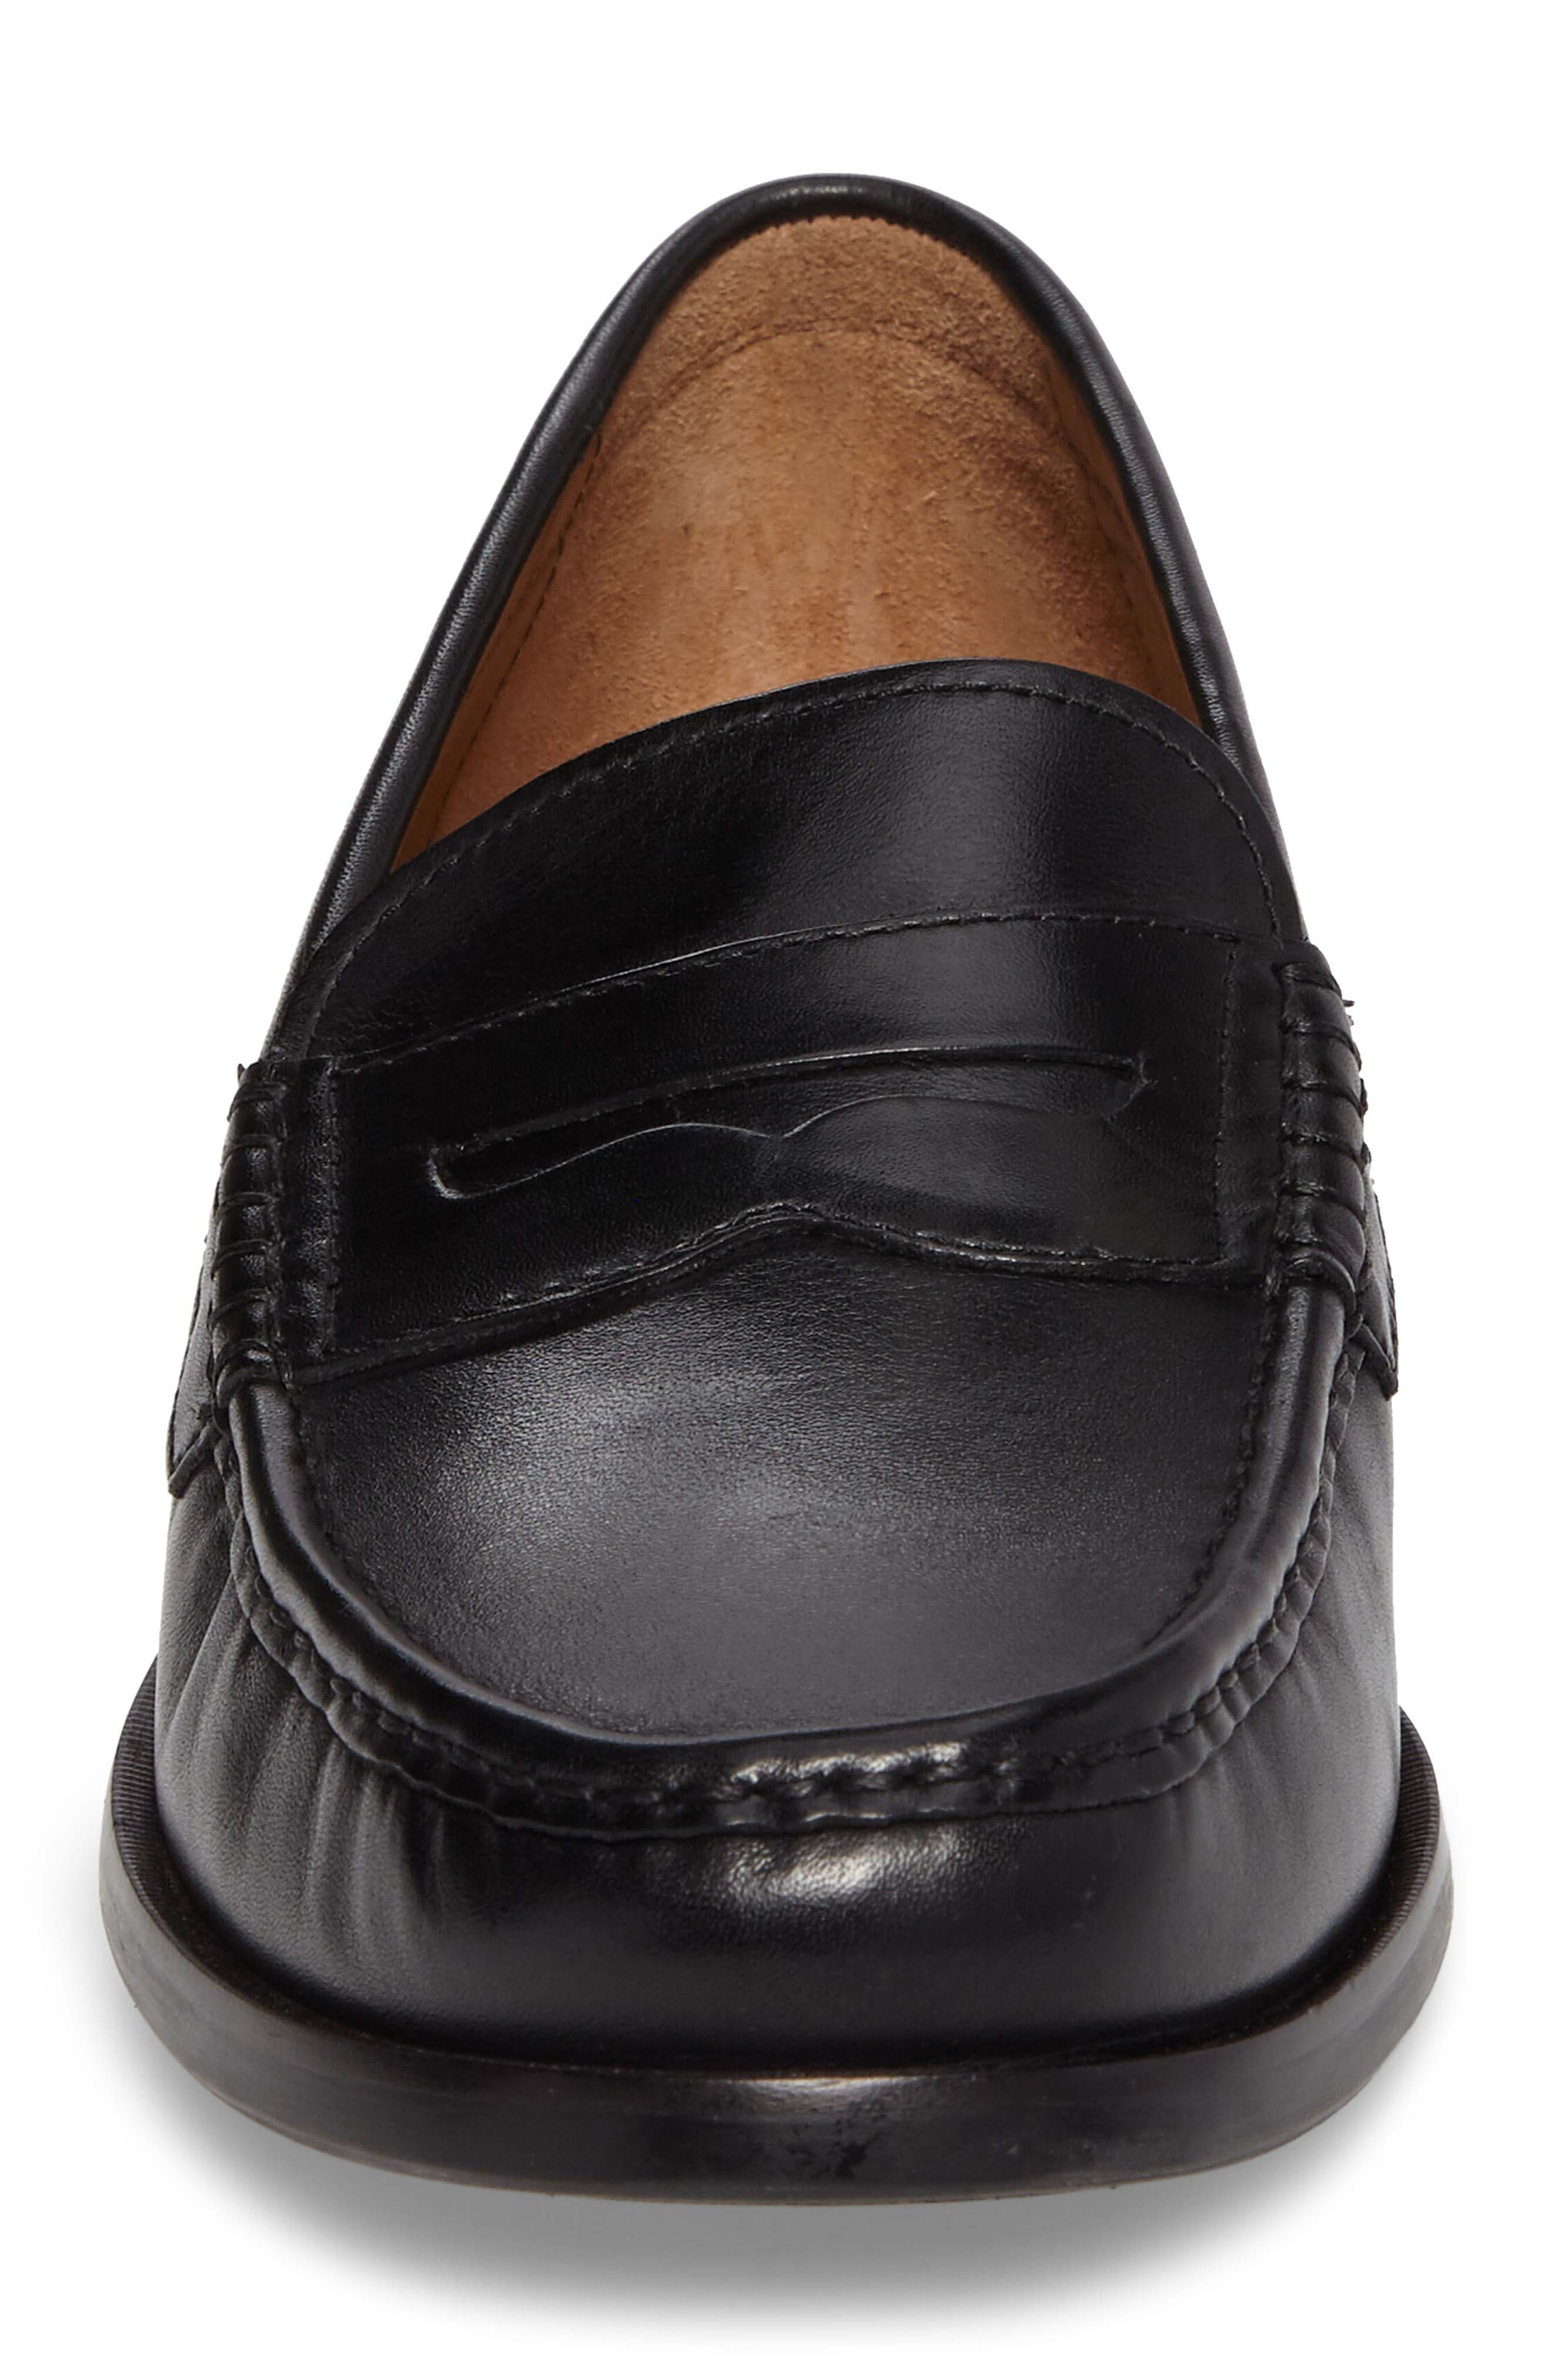 Pinch Friday Penny Loafer,                             Alternate thumbnail 4, color,                             Black Leather